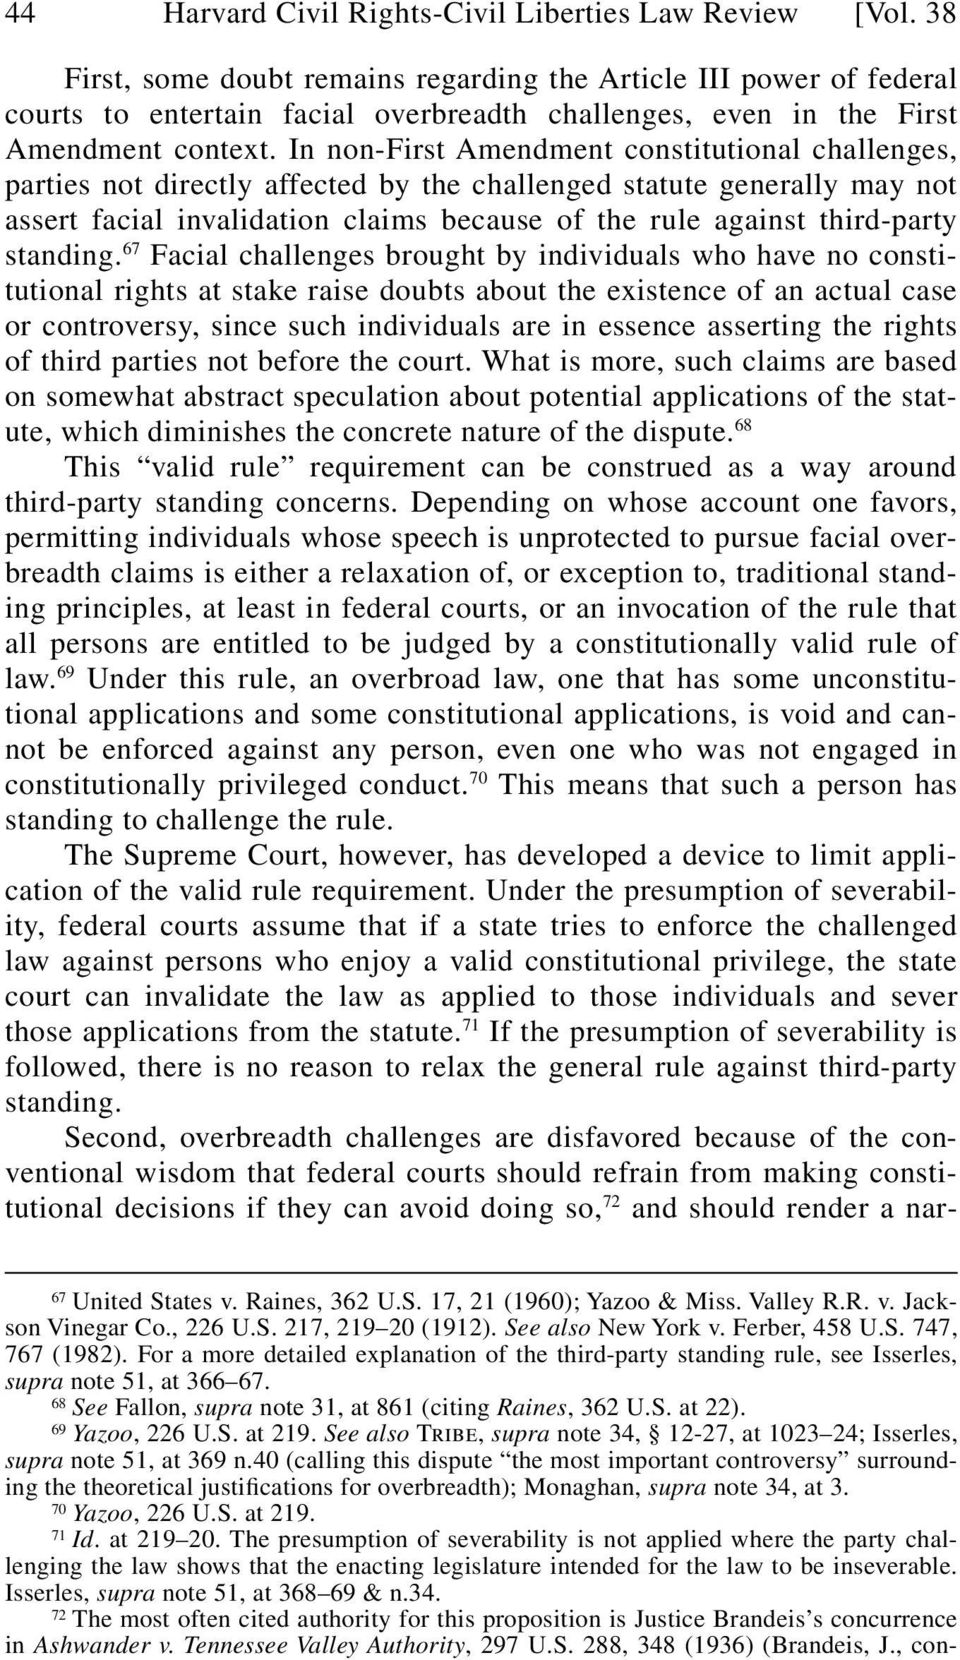 In non-first Amendment constitutional challenges, parties not directly affected by the challenged statute generally may not assert facial invalidation claims because of the rule against third-party